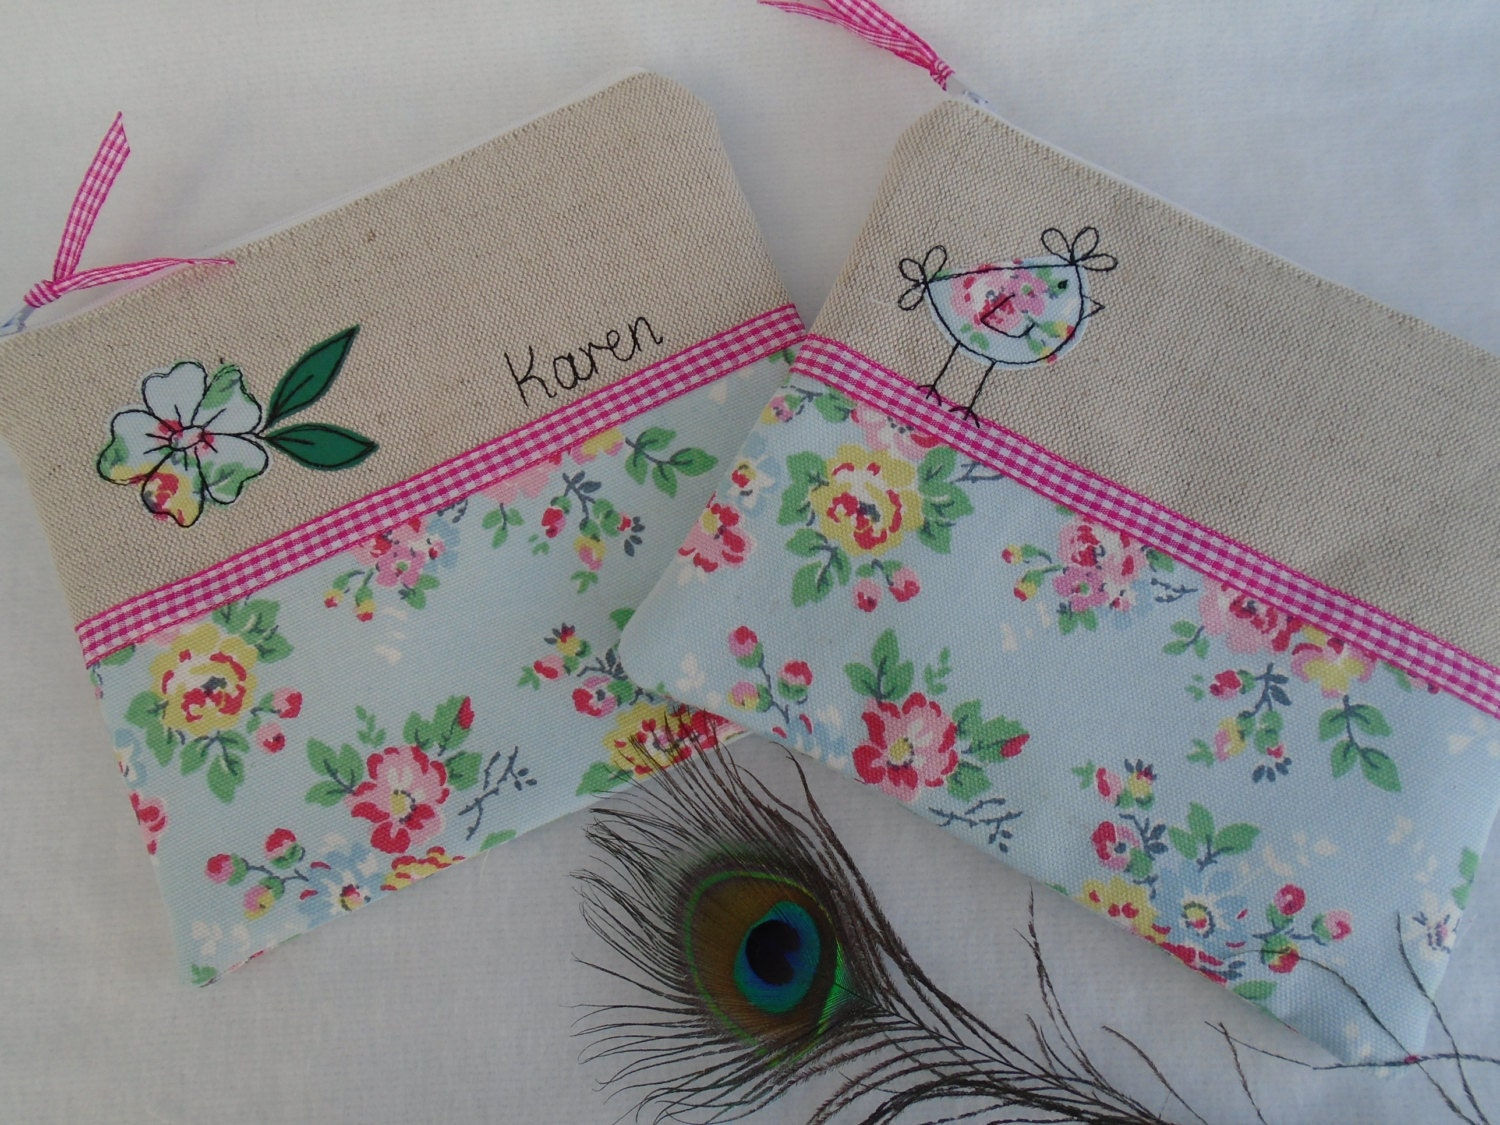 Handmade Small Cosmetic Makeup Bag or Purse with option to personalise Choice of Hen or Flower Applique Cath Kidston Blue Floral fabric